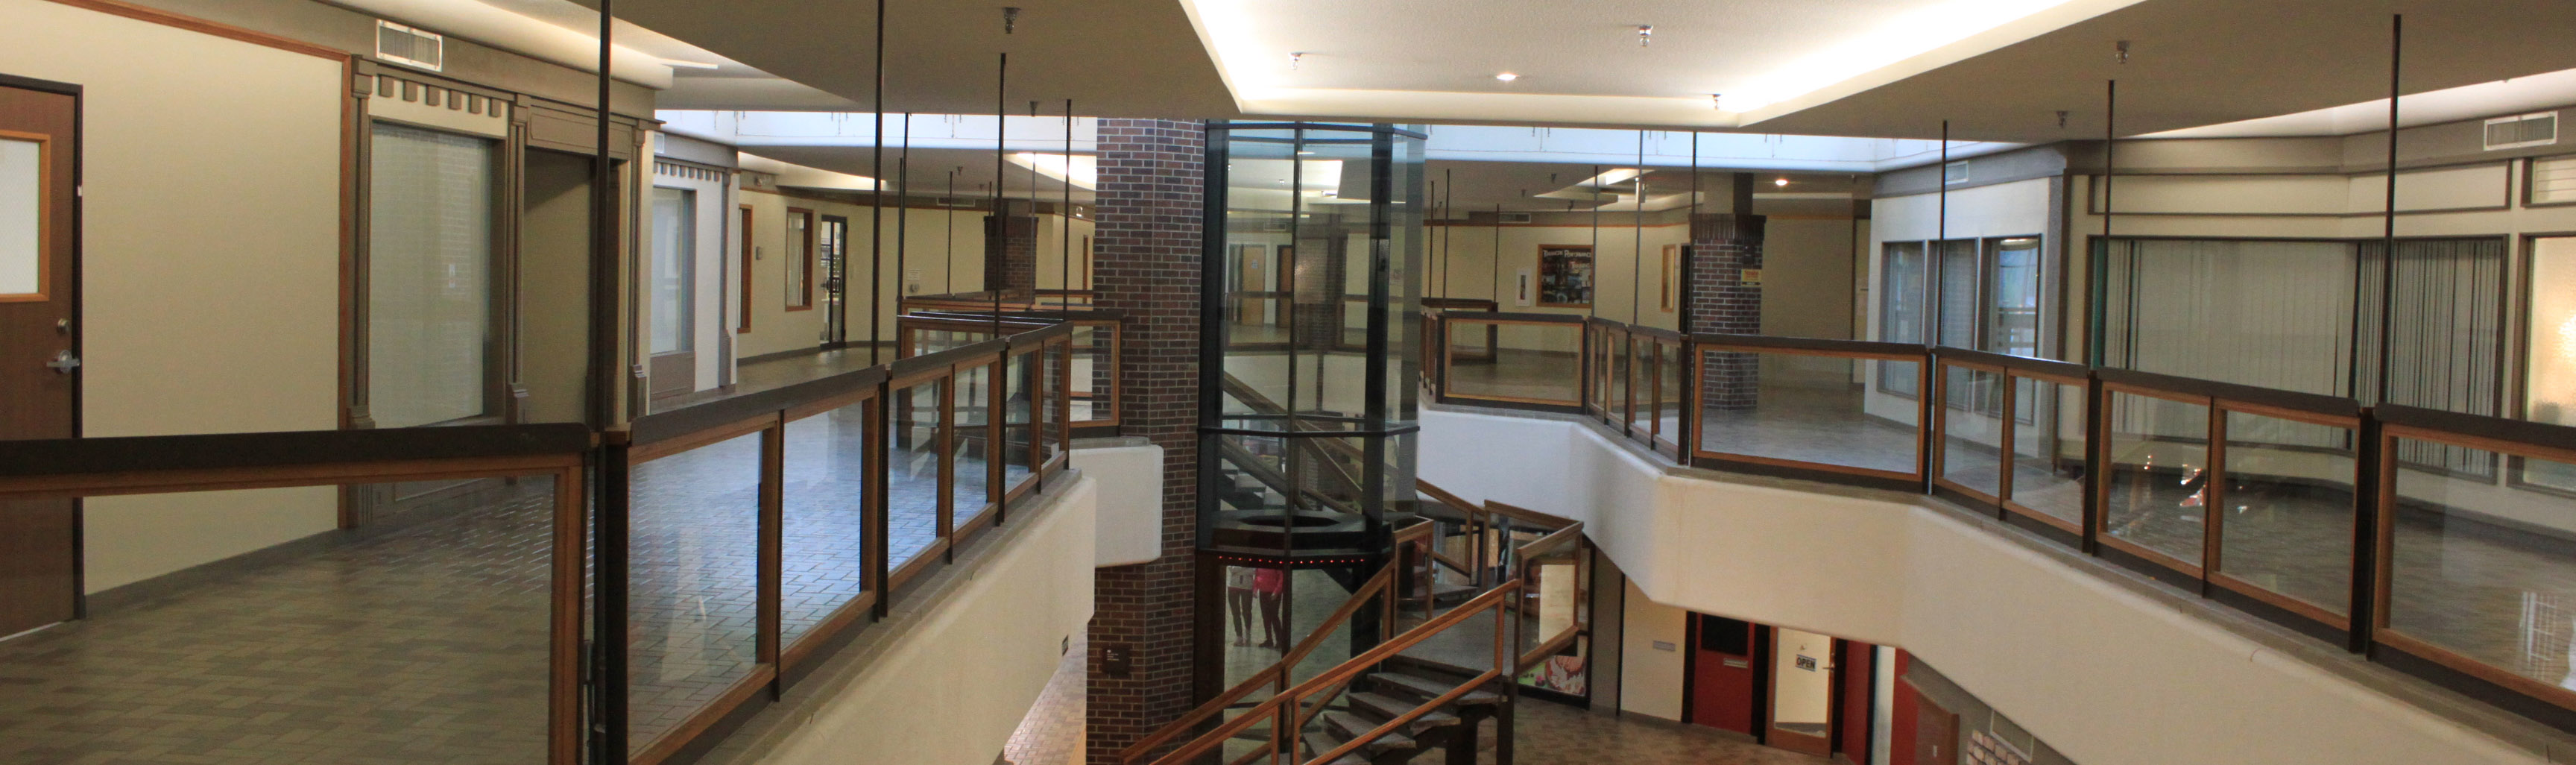 Commercial Property Rental In St Cloud Midtown Square Mall